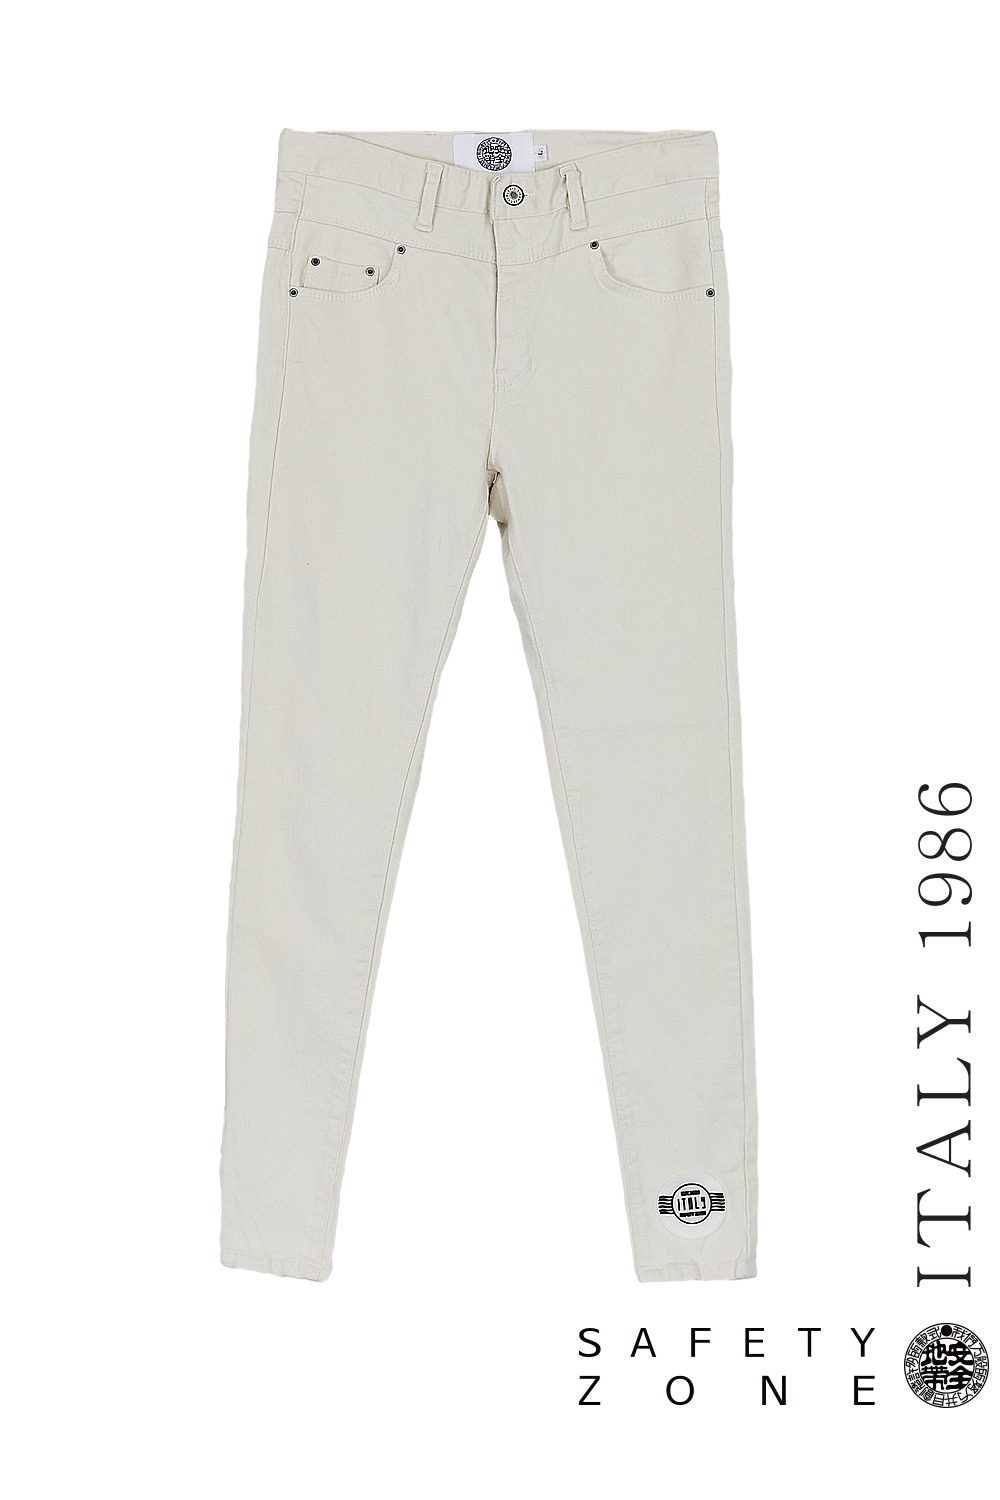 [BL P] ANCKLE WP PANTS (WHITE)